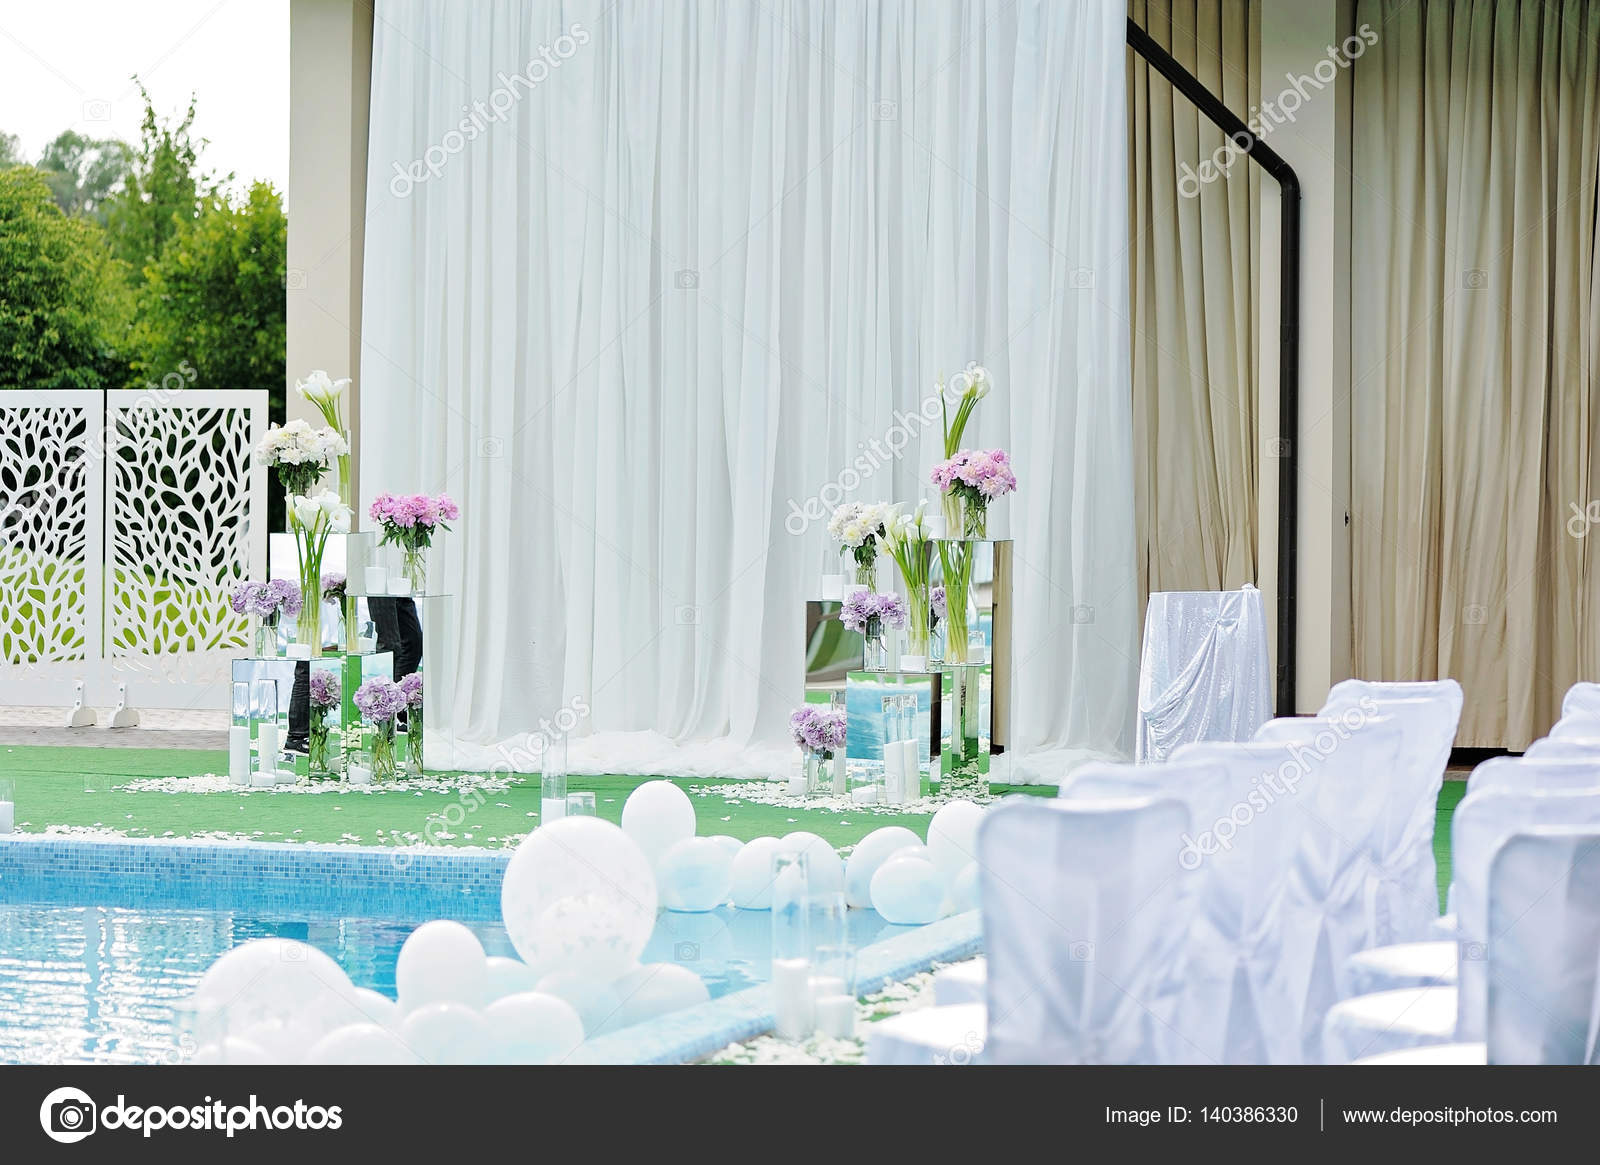 Pool Wedding Decor Decorations For The Wedding Ceremony By